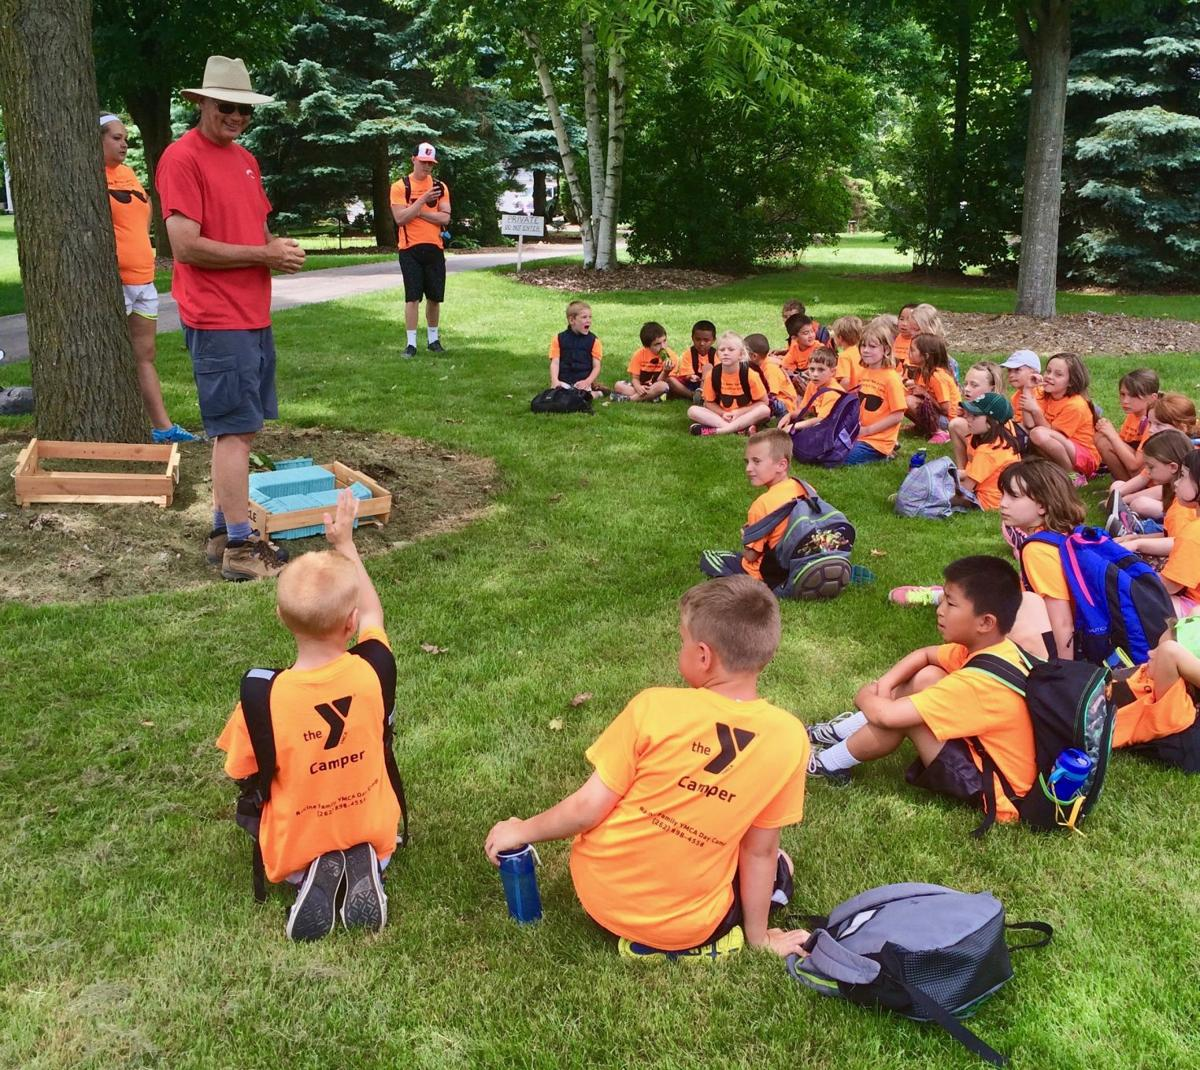 Ymca Youth Camps: Racine Family YMCA Helps Youth Enjoy Summer